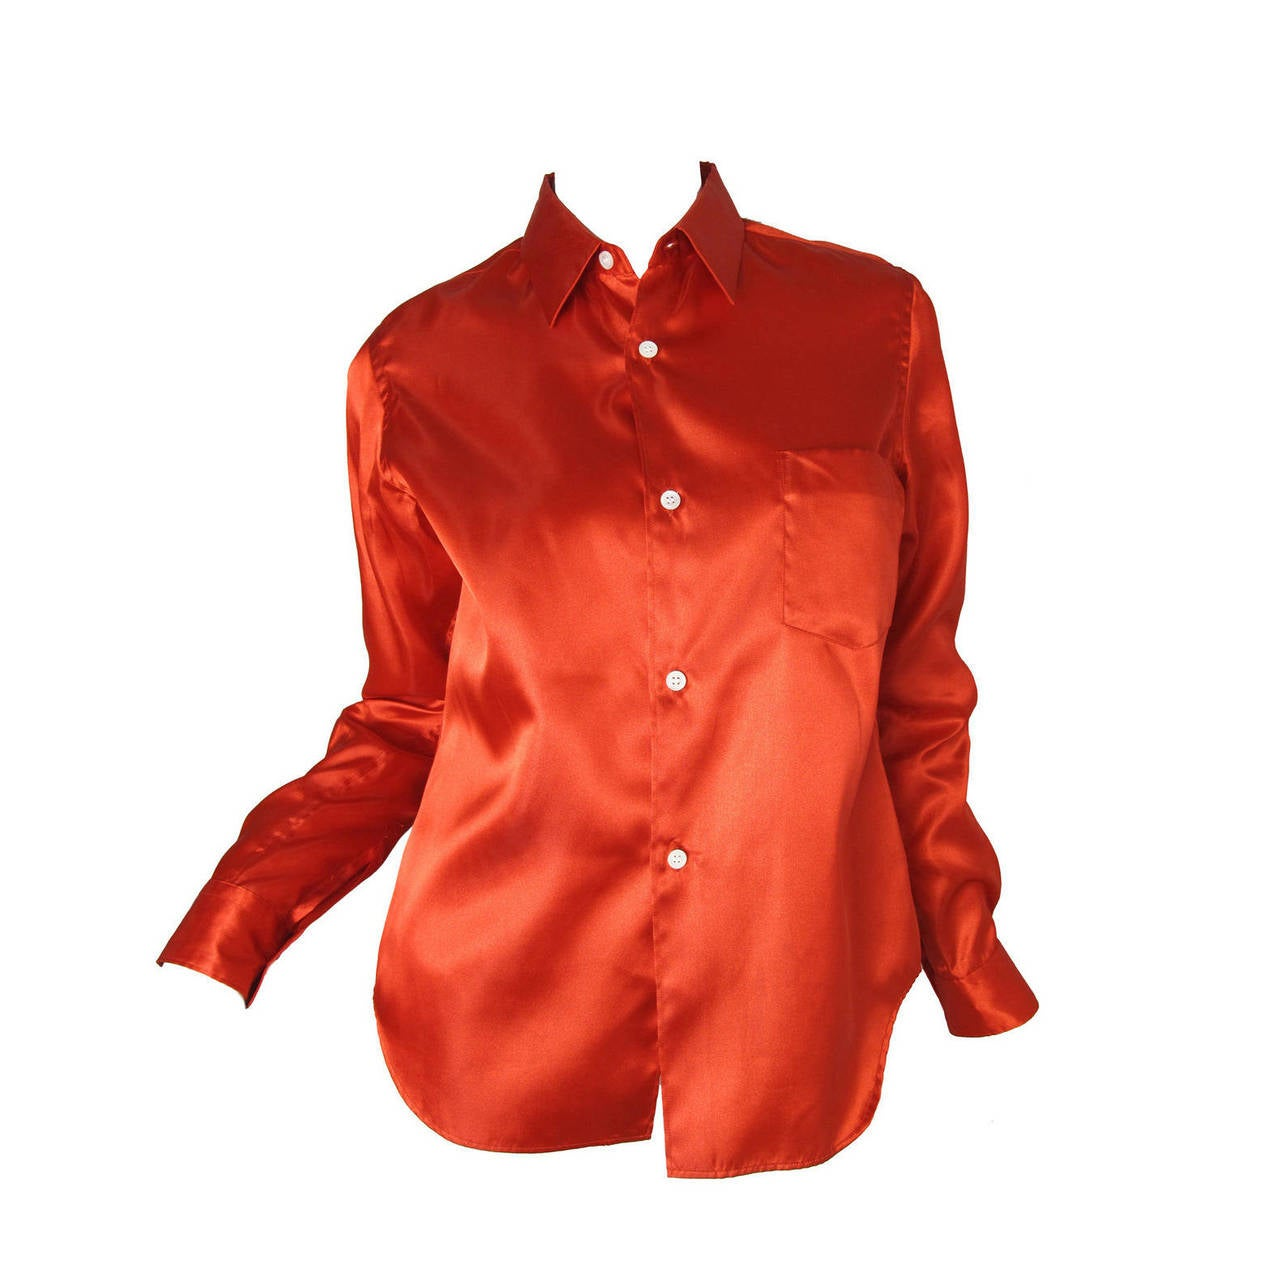 Comme des Garcons Red Shirt,  2008  For Sale